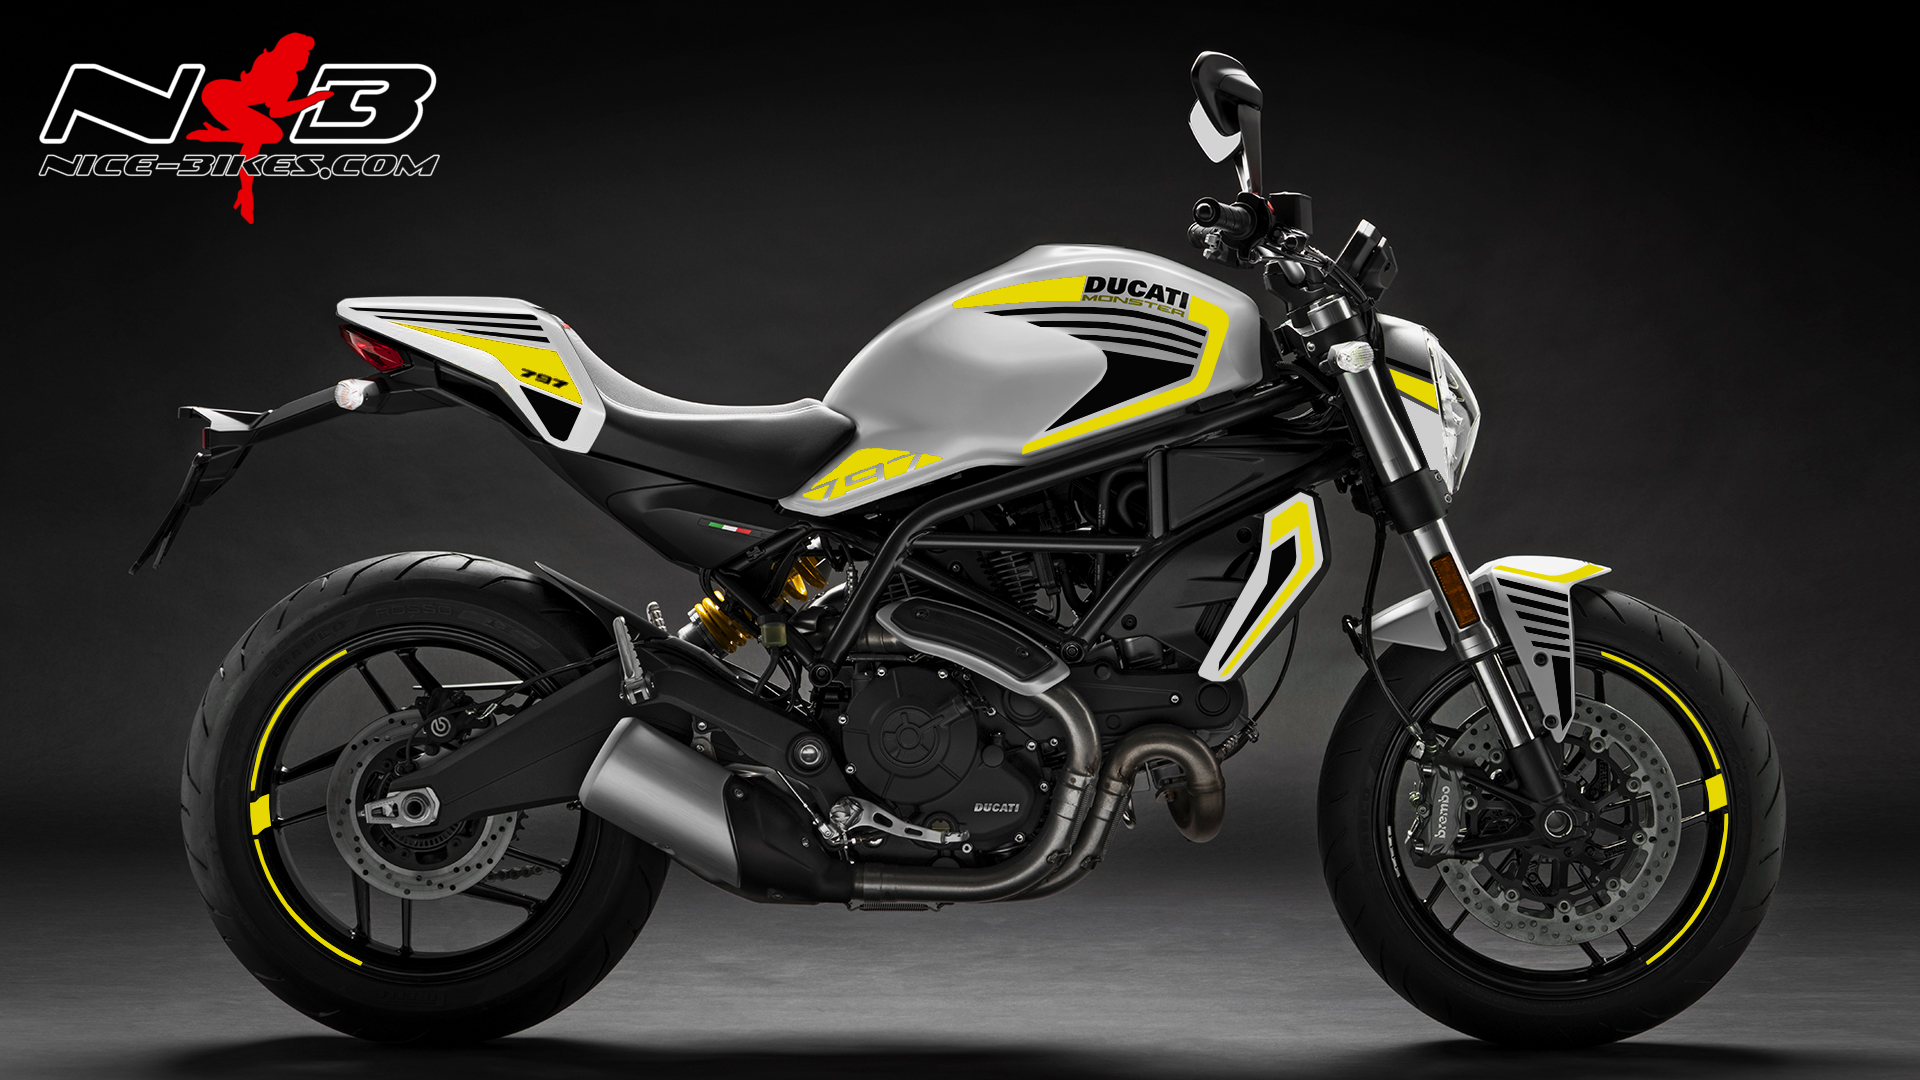 Foliendesign DUCATI  Monster 797 Bj. 2020 Hornet Yellow